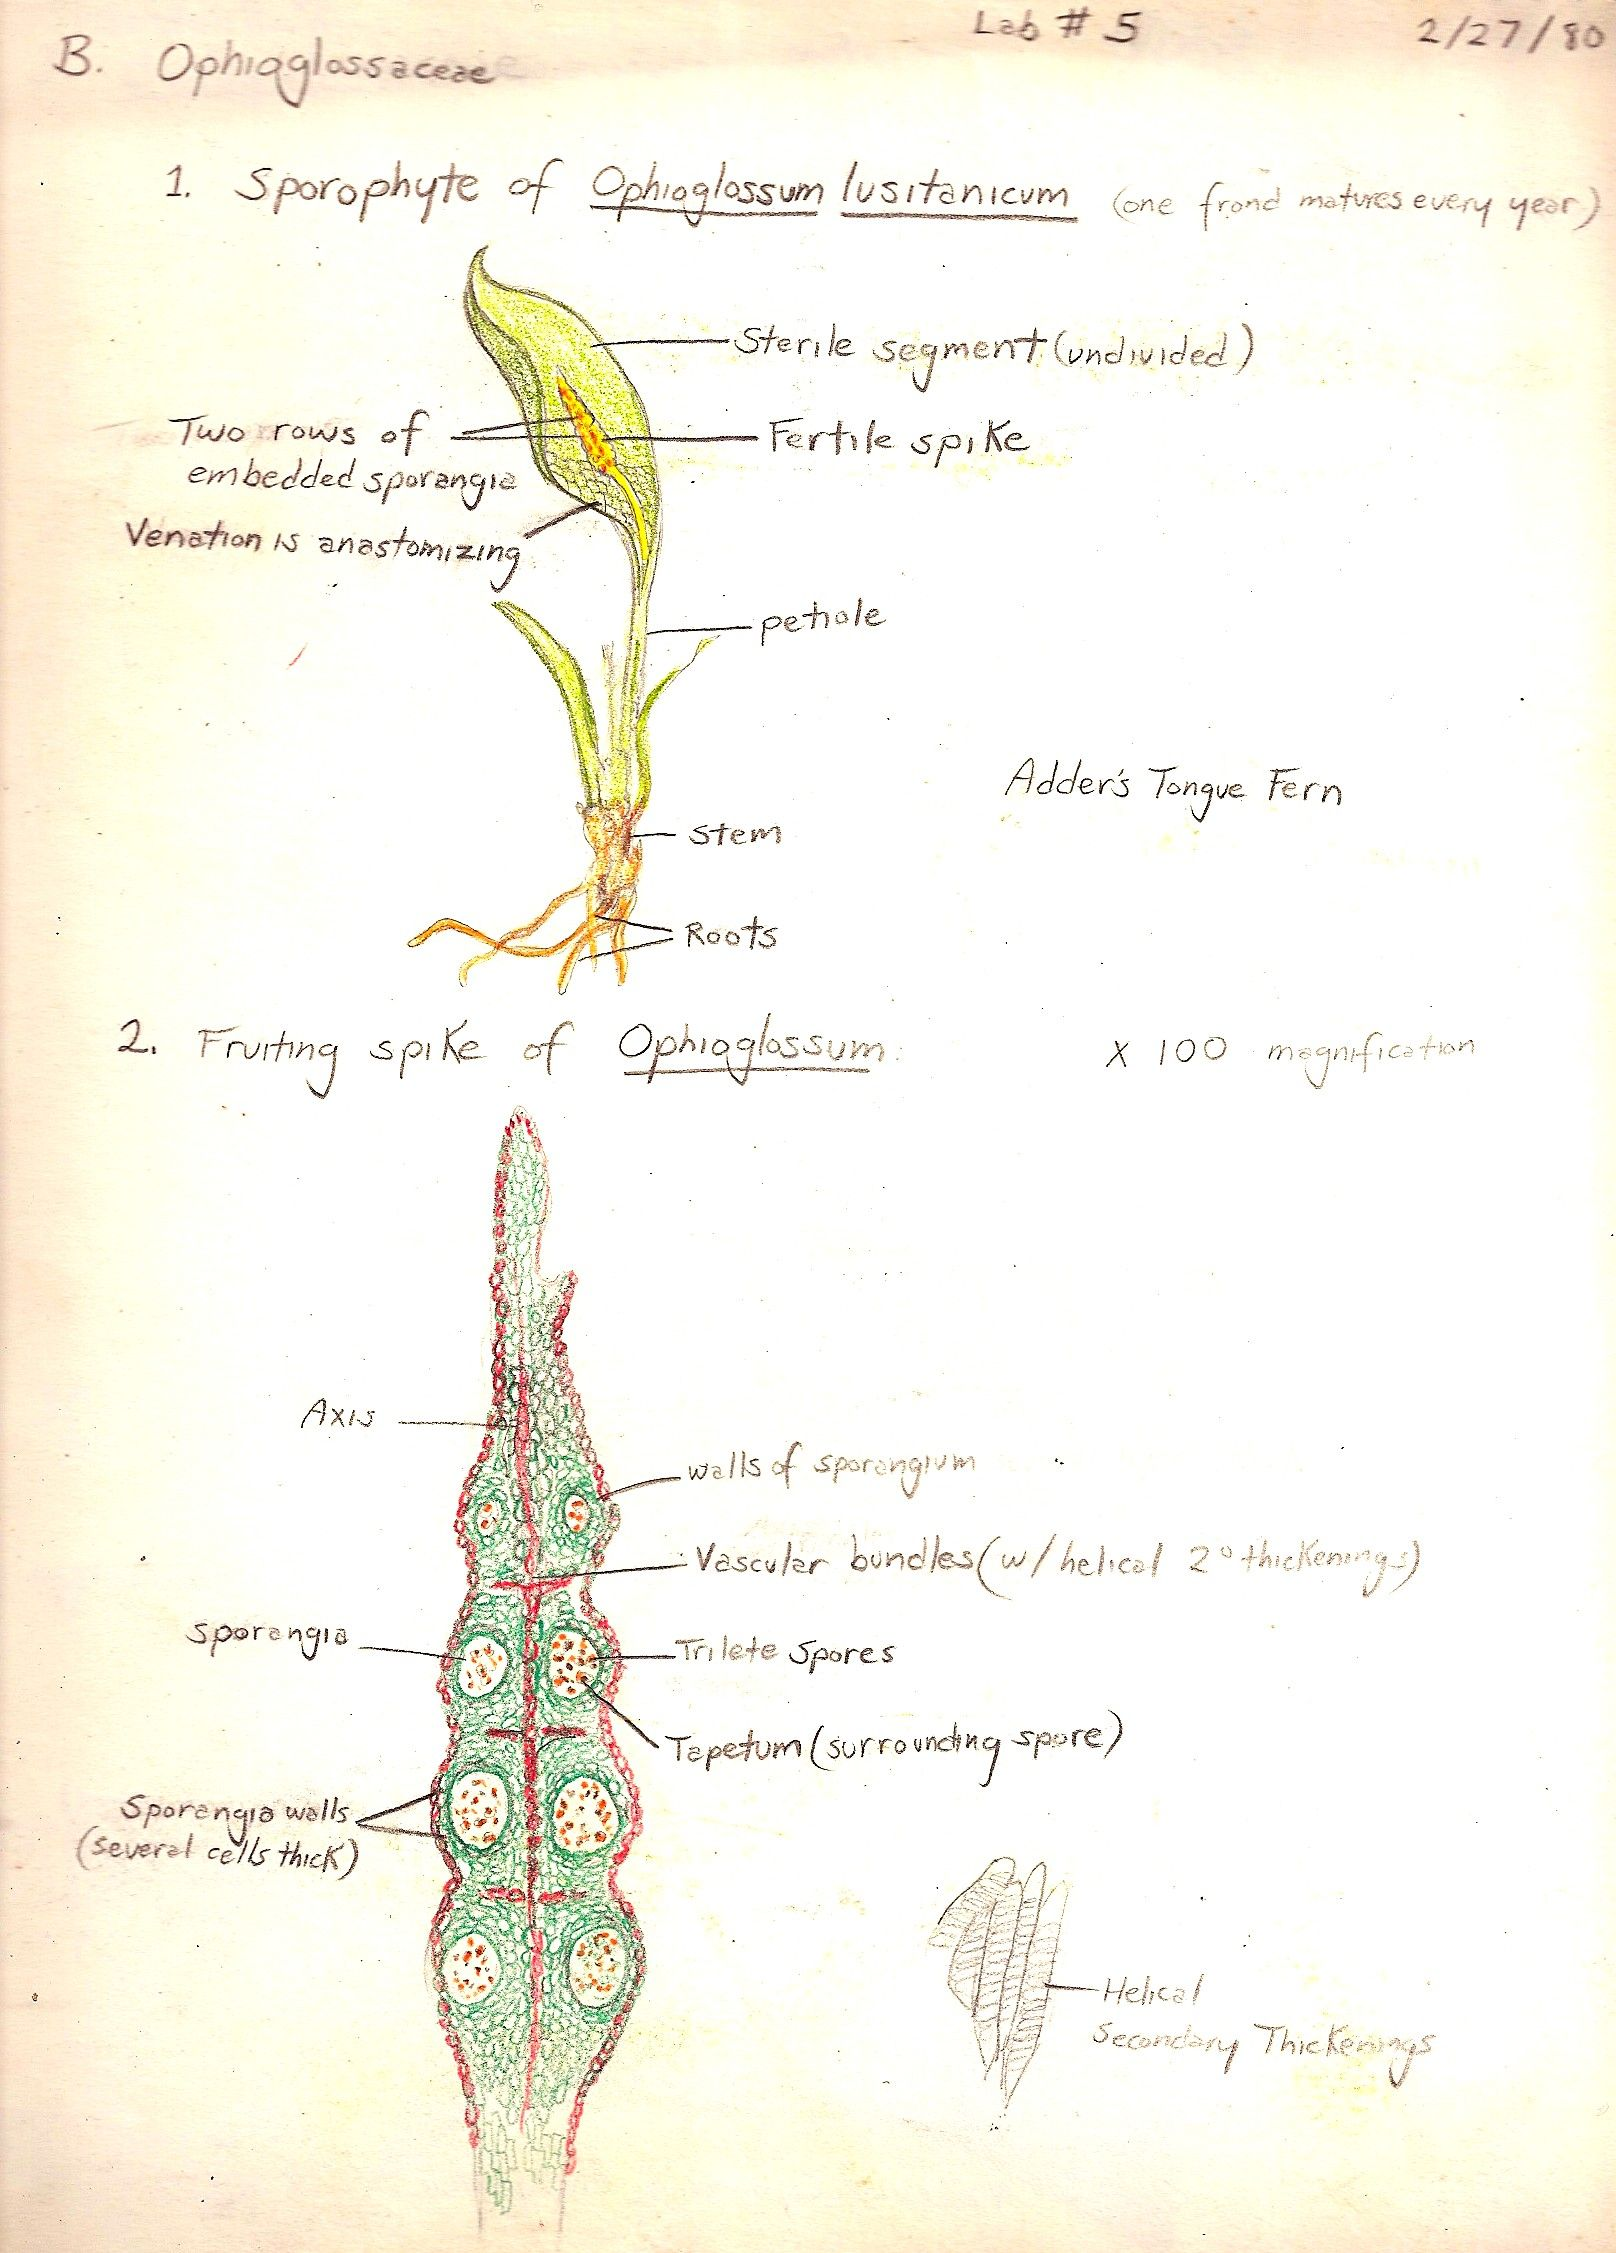 Ophioglossum sporophyte and fruiting spike. Sketched by Gwen in 1980 ...